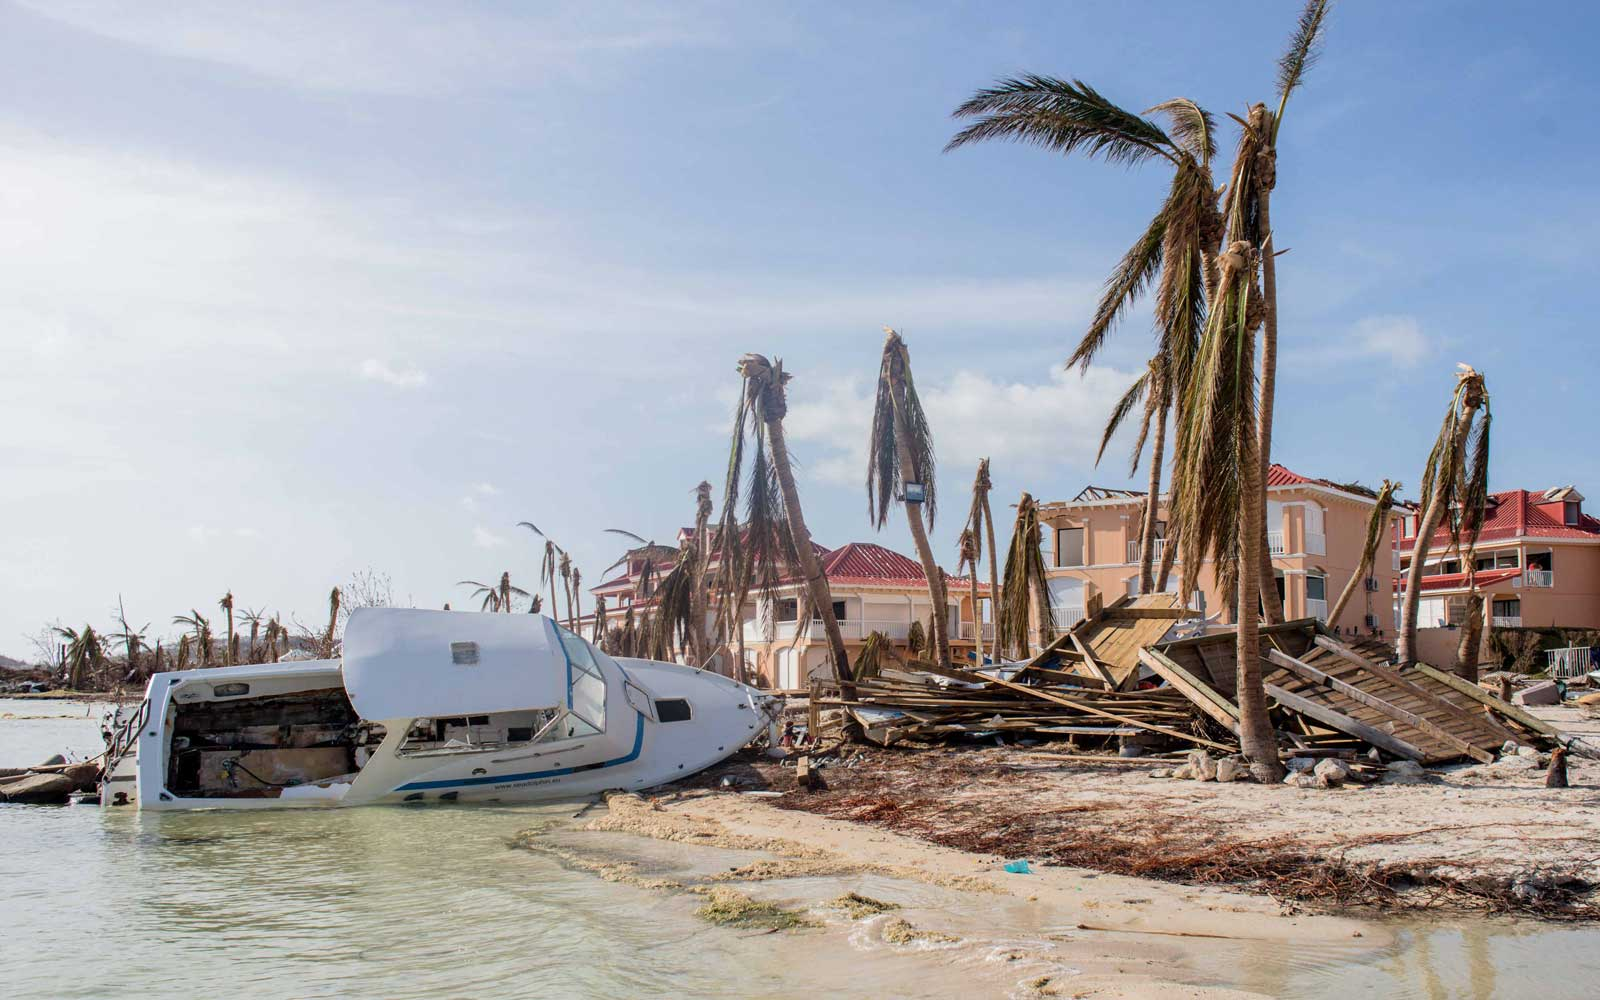 Hurricane damage on the island of Saint Martin after the passage of the hurricane IRMA through the Caribbean Islands on September 11, 2017 in the French island of Saint Martin